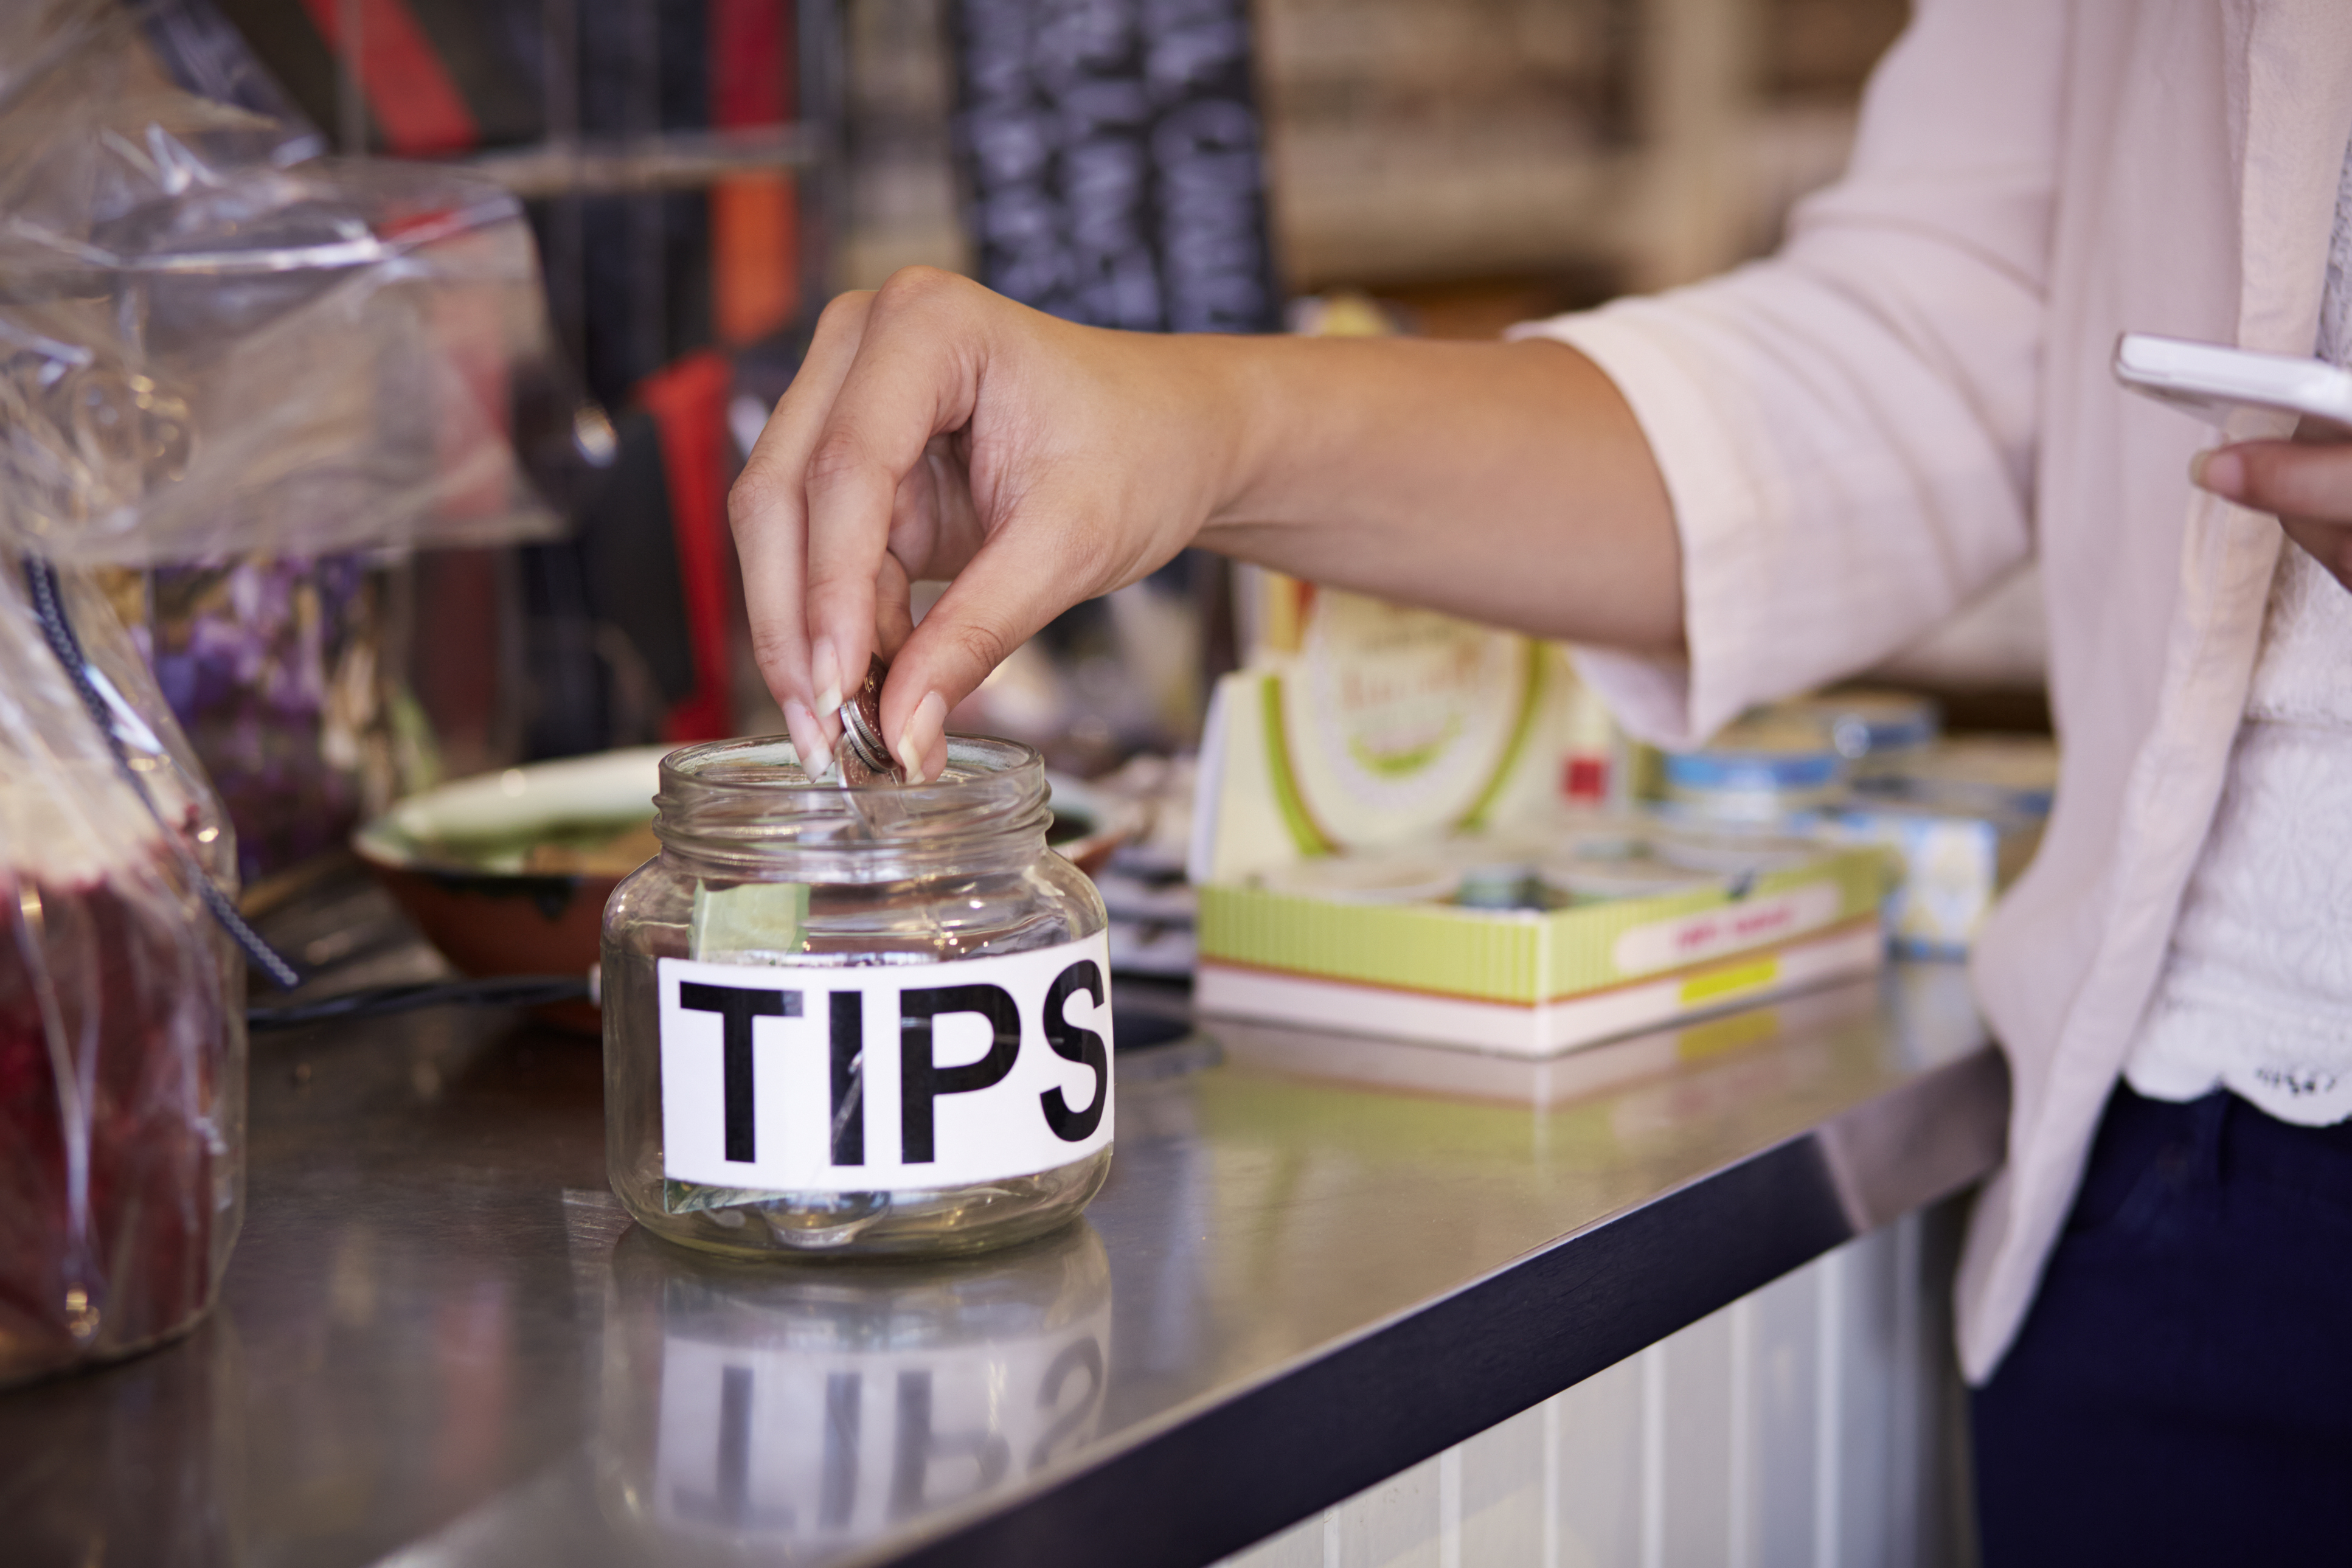 Infographic: To Tip Or Not to Tip?